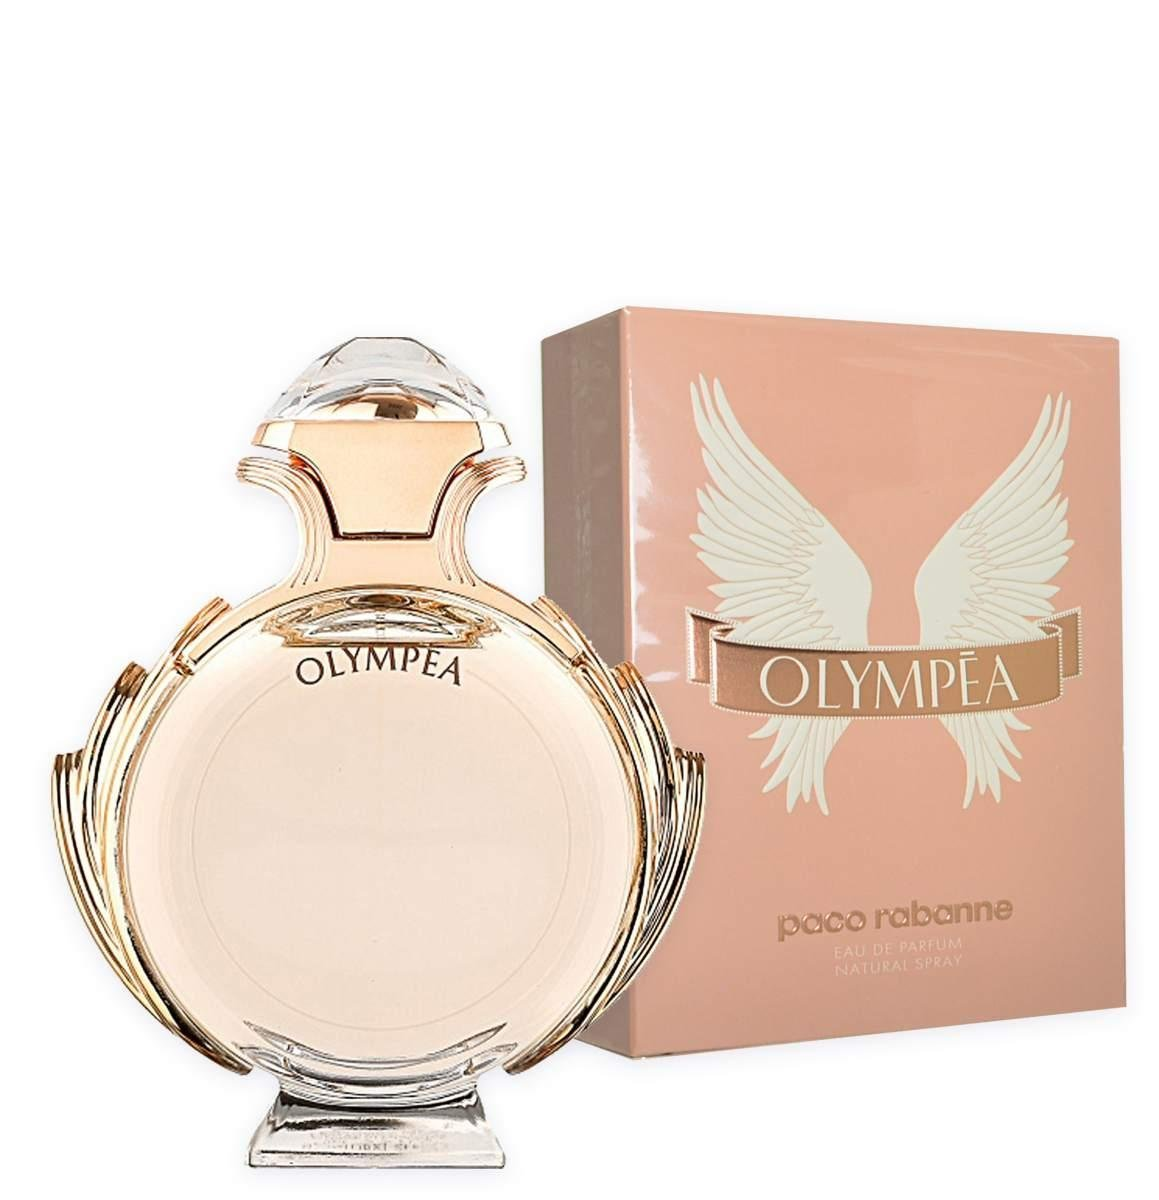 Paco Rabanne Olympea amazon